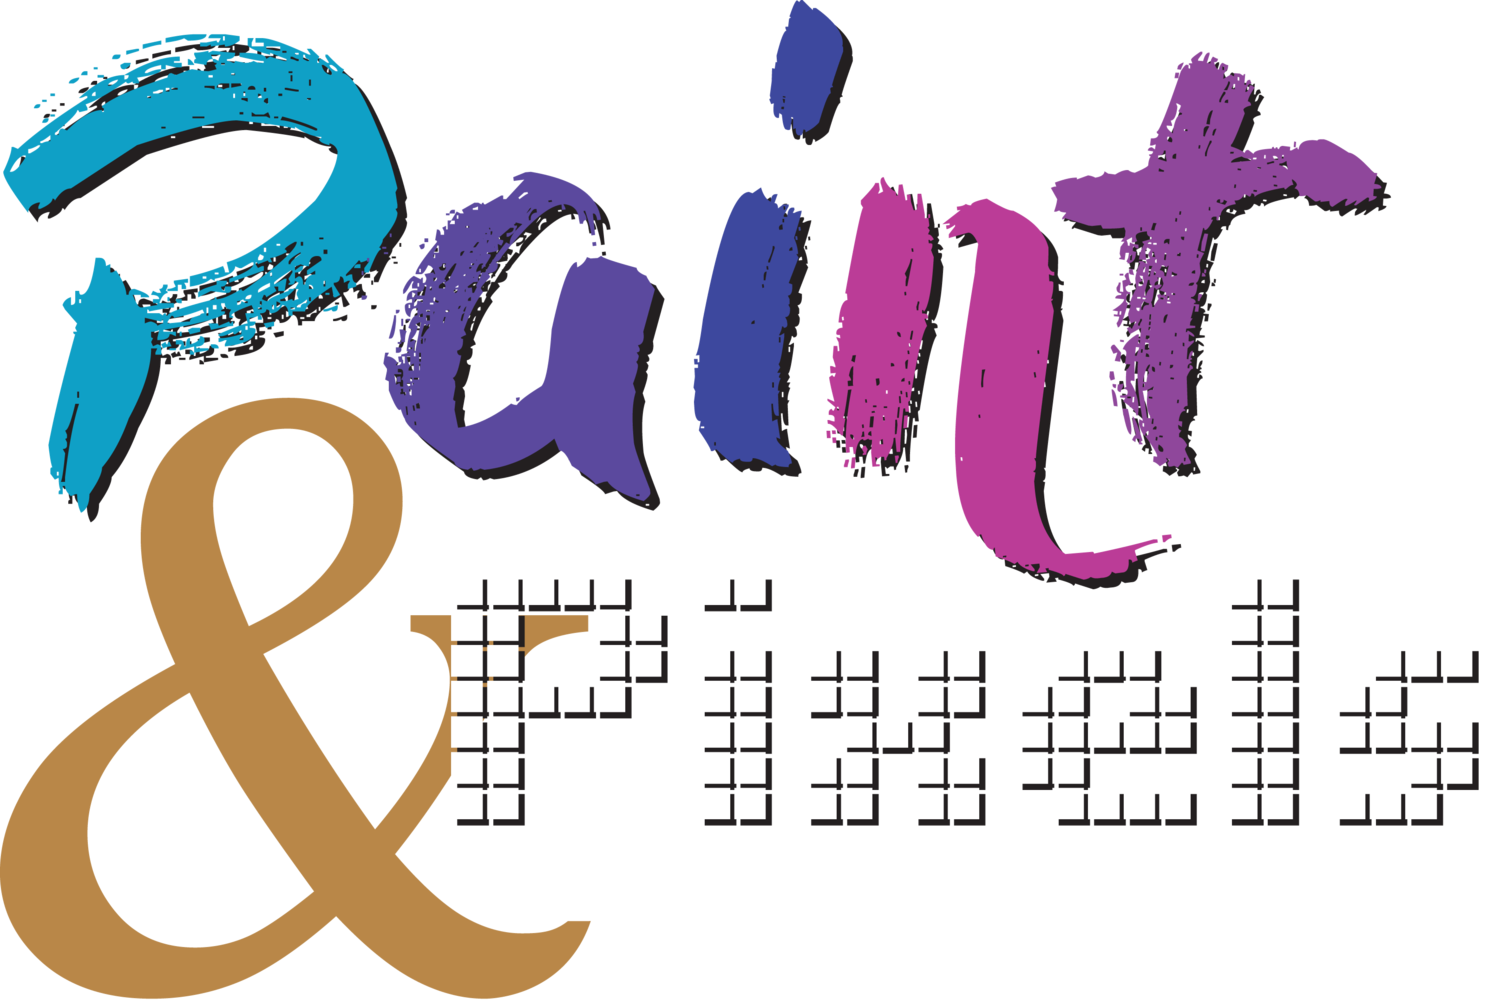 Paint & Pixels by Jenna Lueck